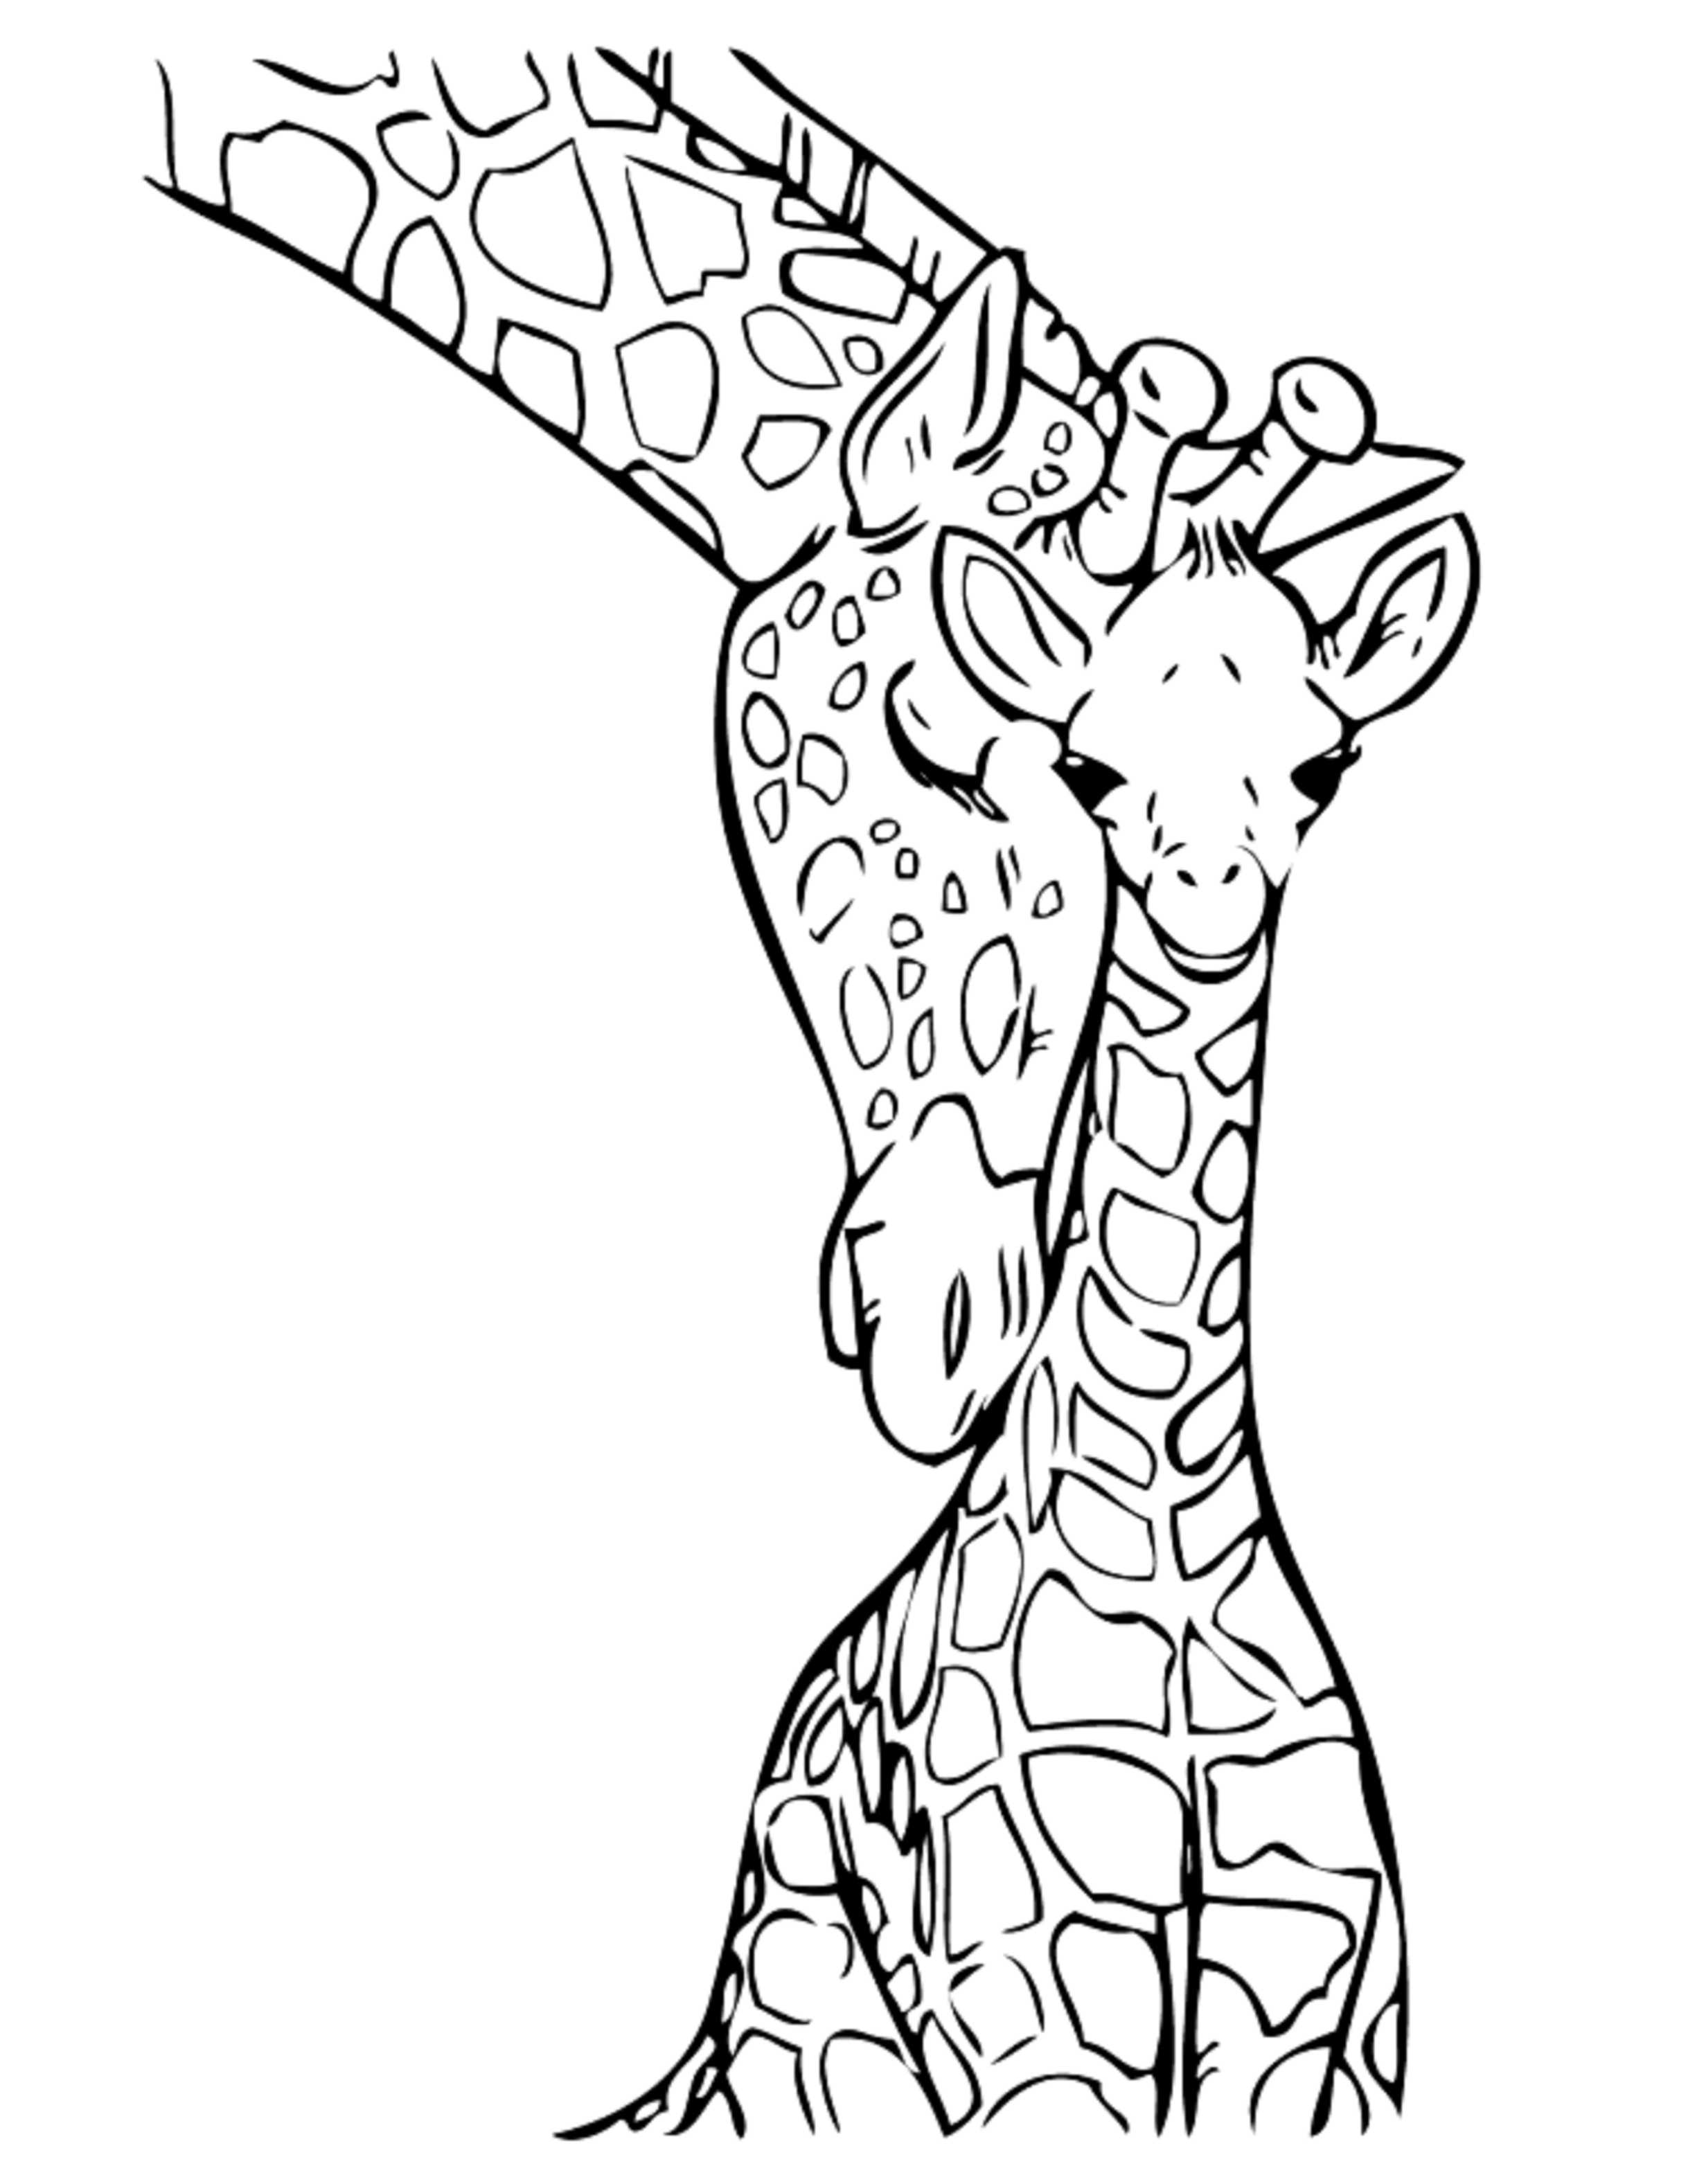 2437x3154 Giraffe Coloring Pages For Girls Preschool In Sweet Draw Image